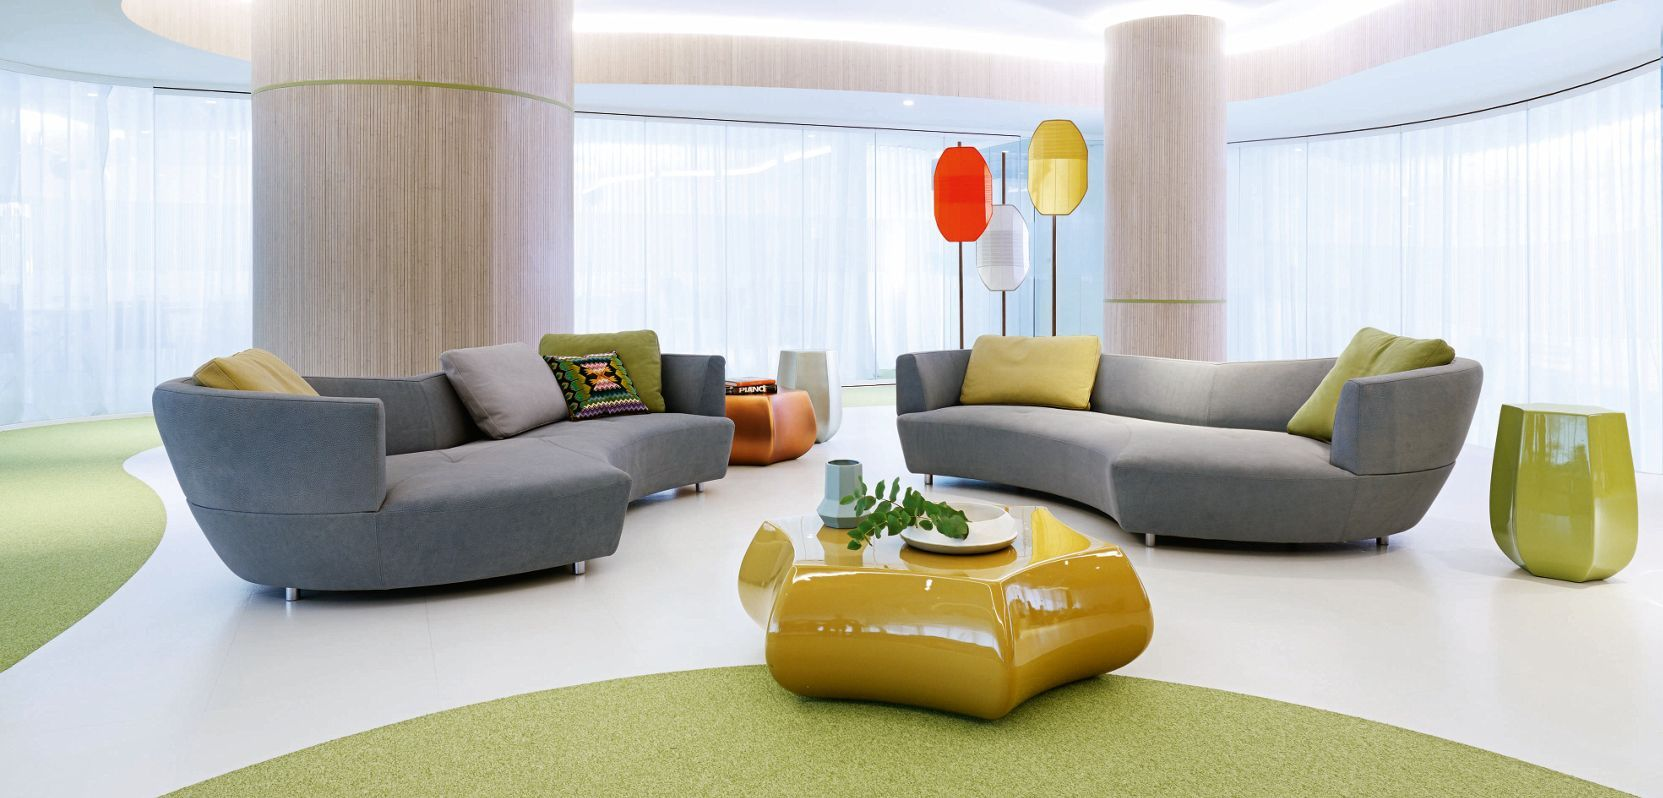 Roche Bobois Digital Large Round 3 Seat Sofa Design G Assmann A Kleene Rochebobois Canape Decoration